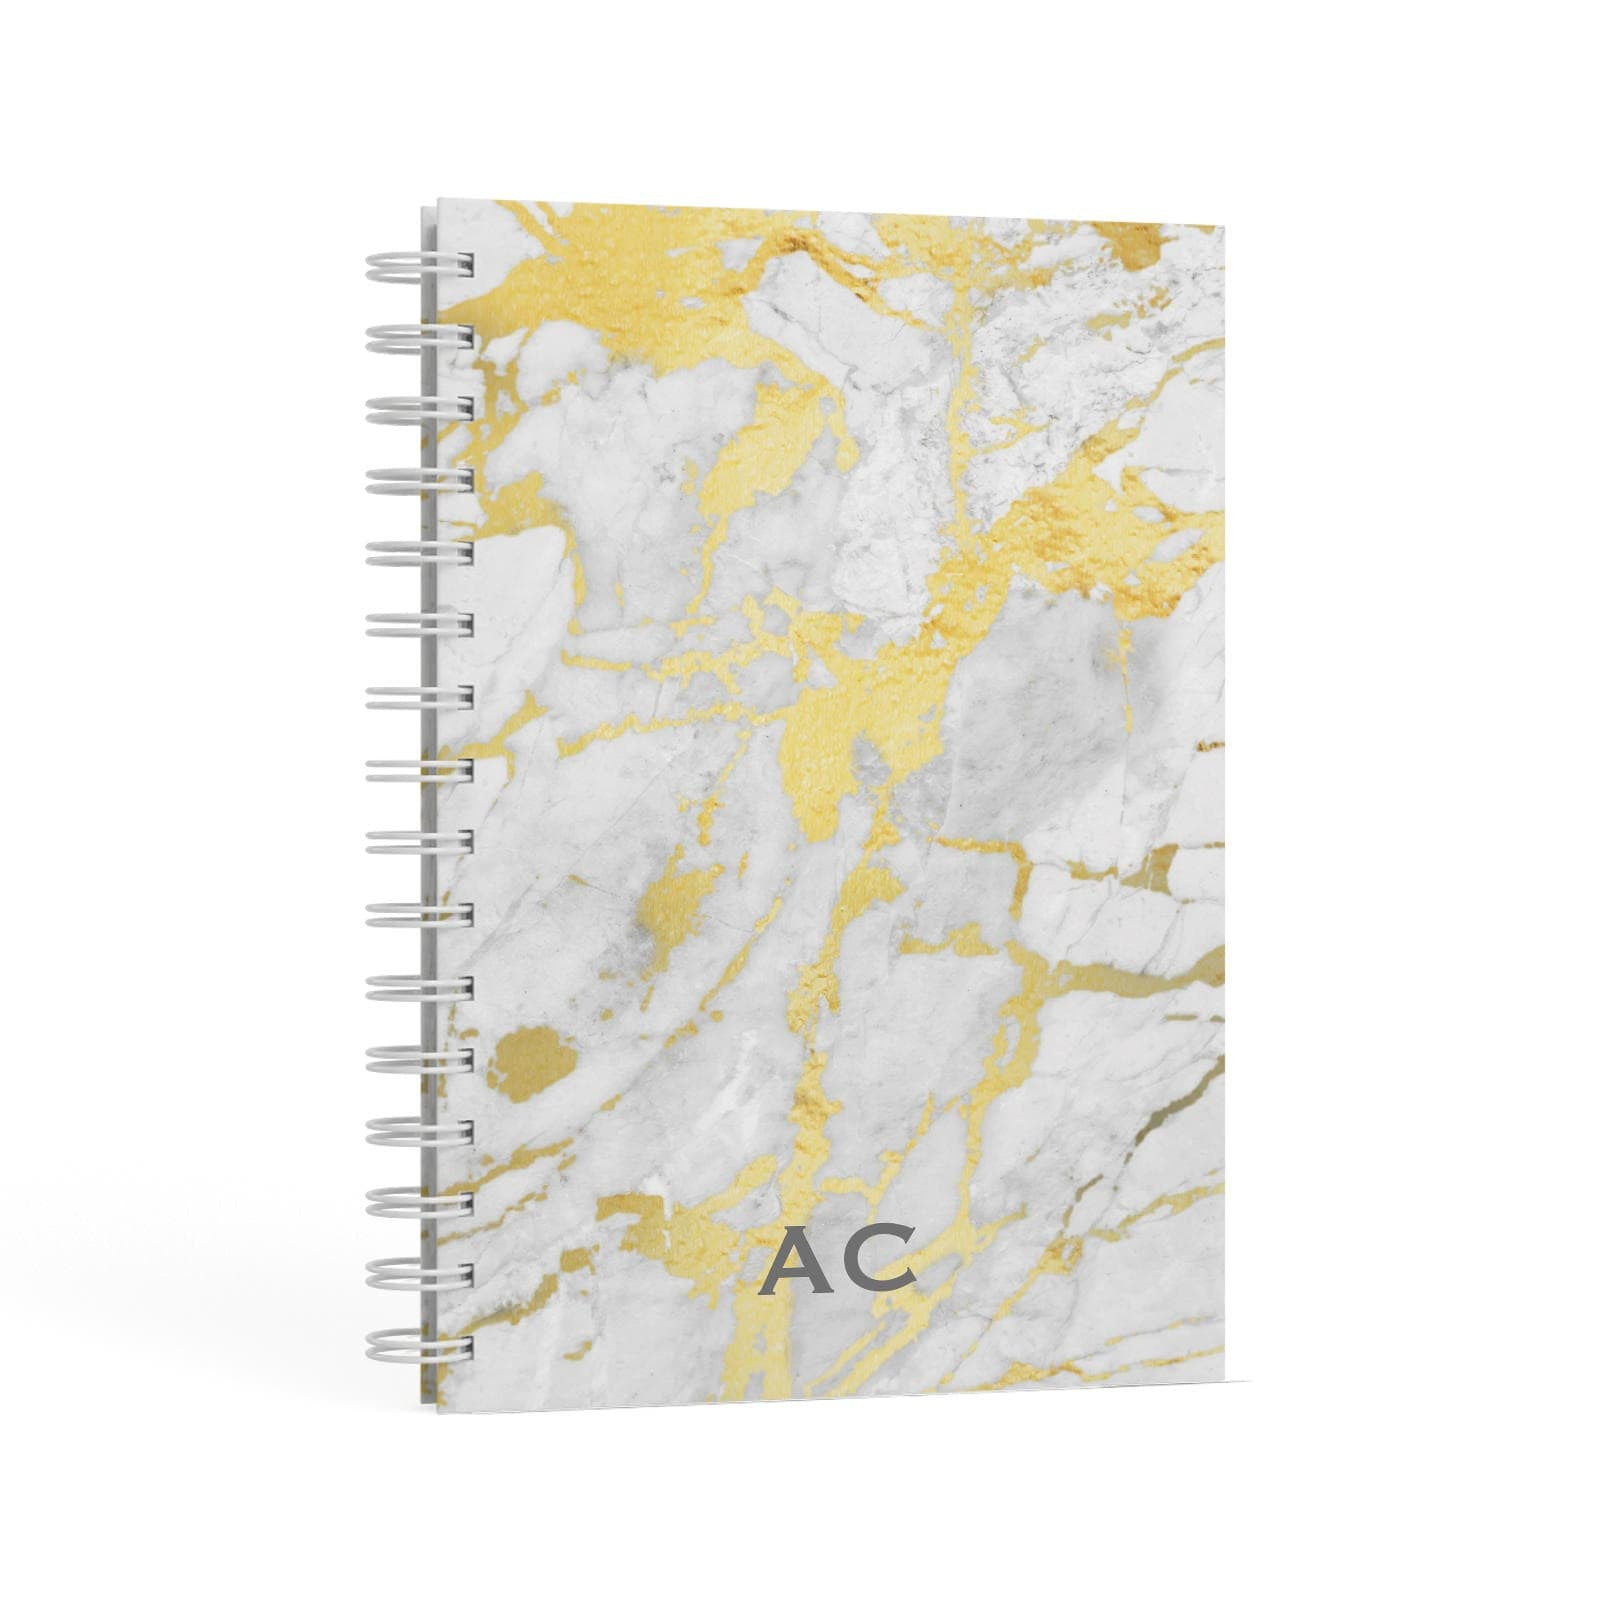 Personalised Gold Marble Initials A5 Hardcover Notebook Second Side View